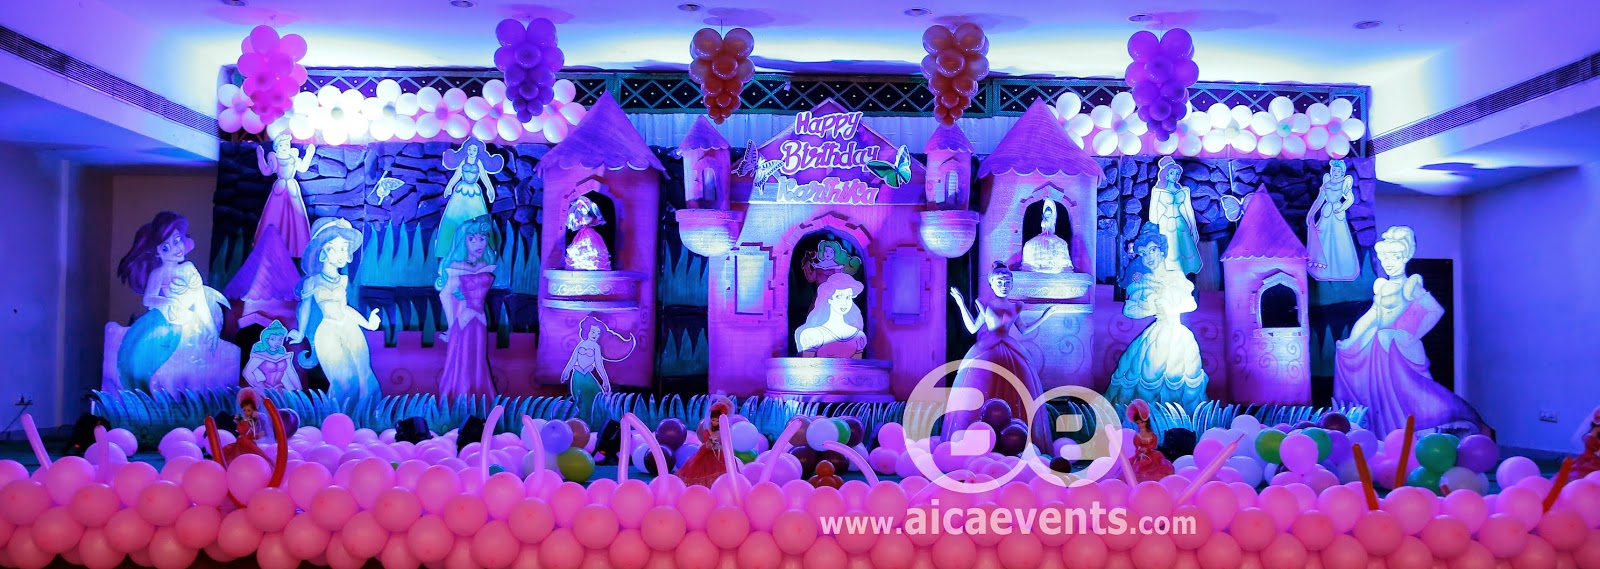 aicaevents Princess Theme Birthday decorations